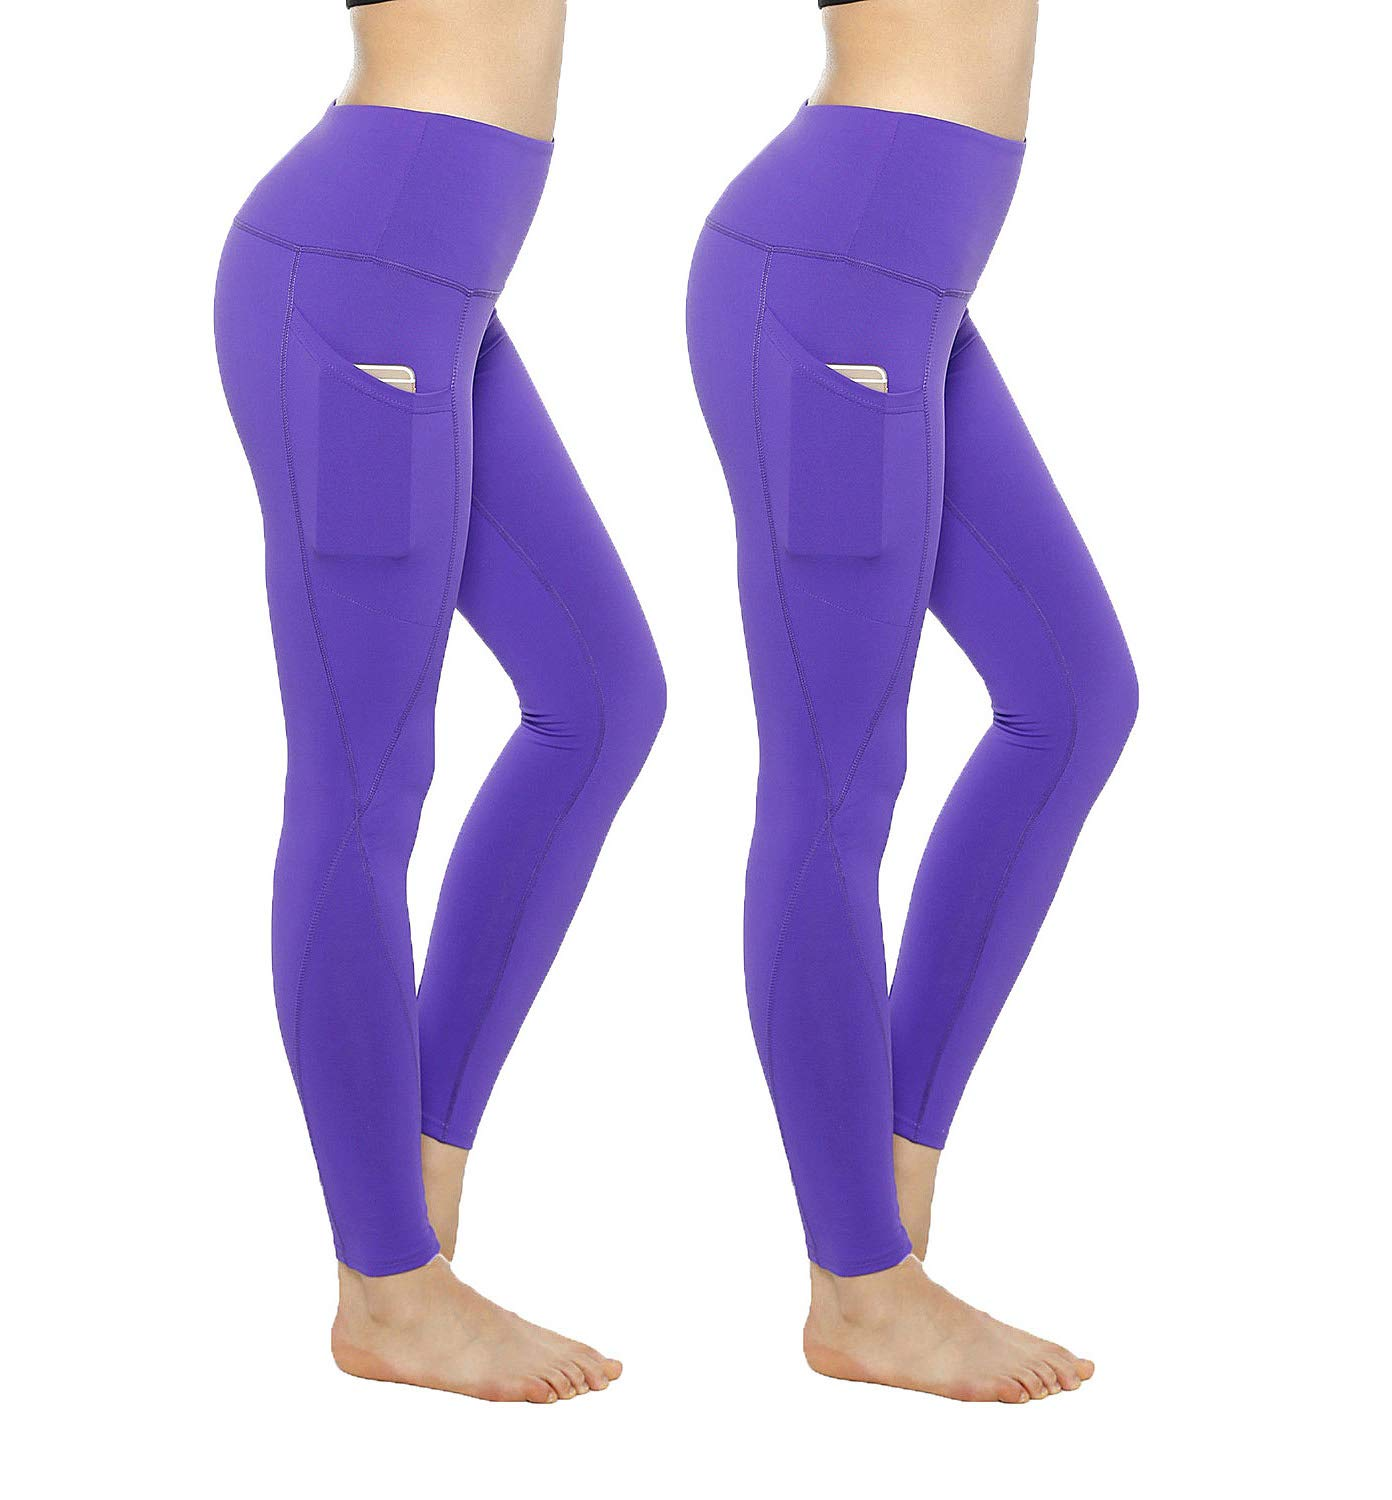 KT Workout Leggings for Women - High Waisted Leggings Pants with Pockets - Reg & Plus Size - 10+ Colors